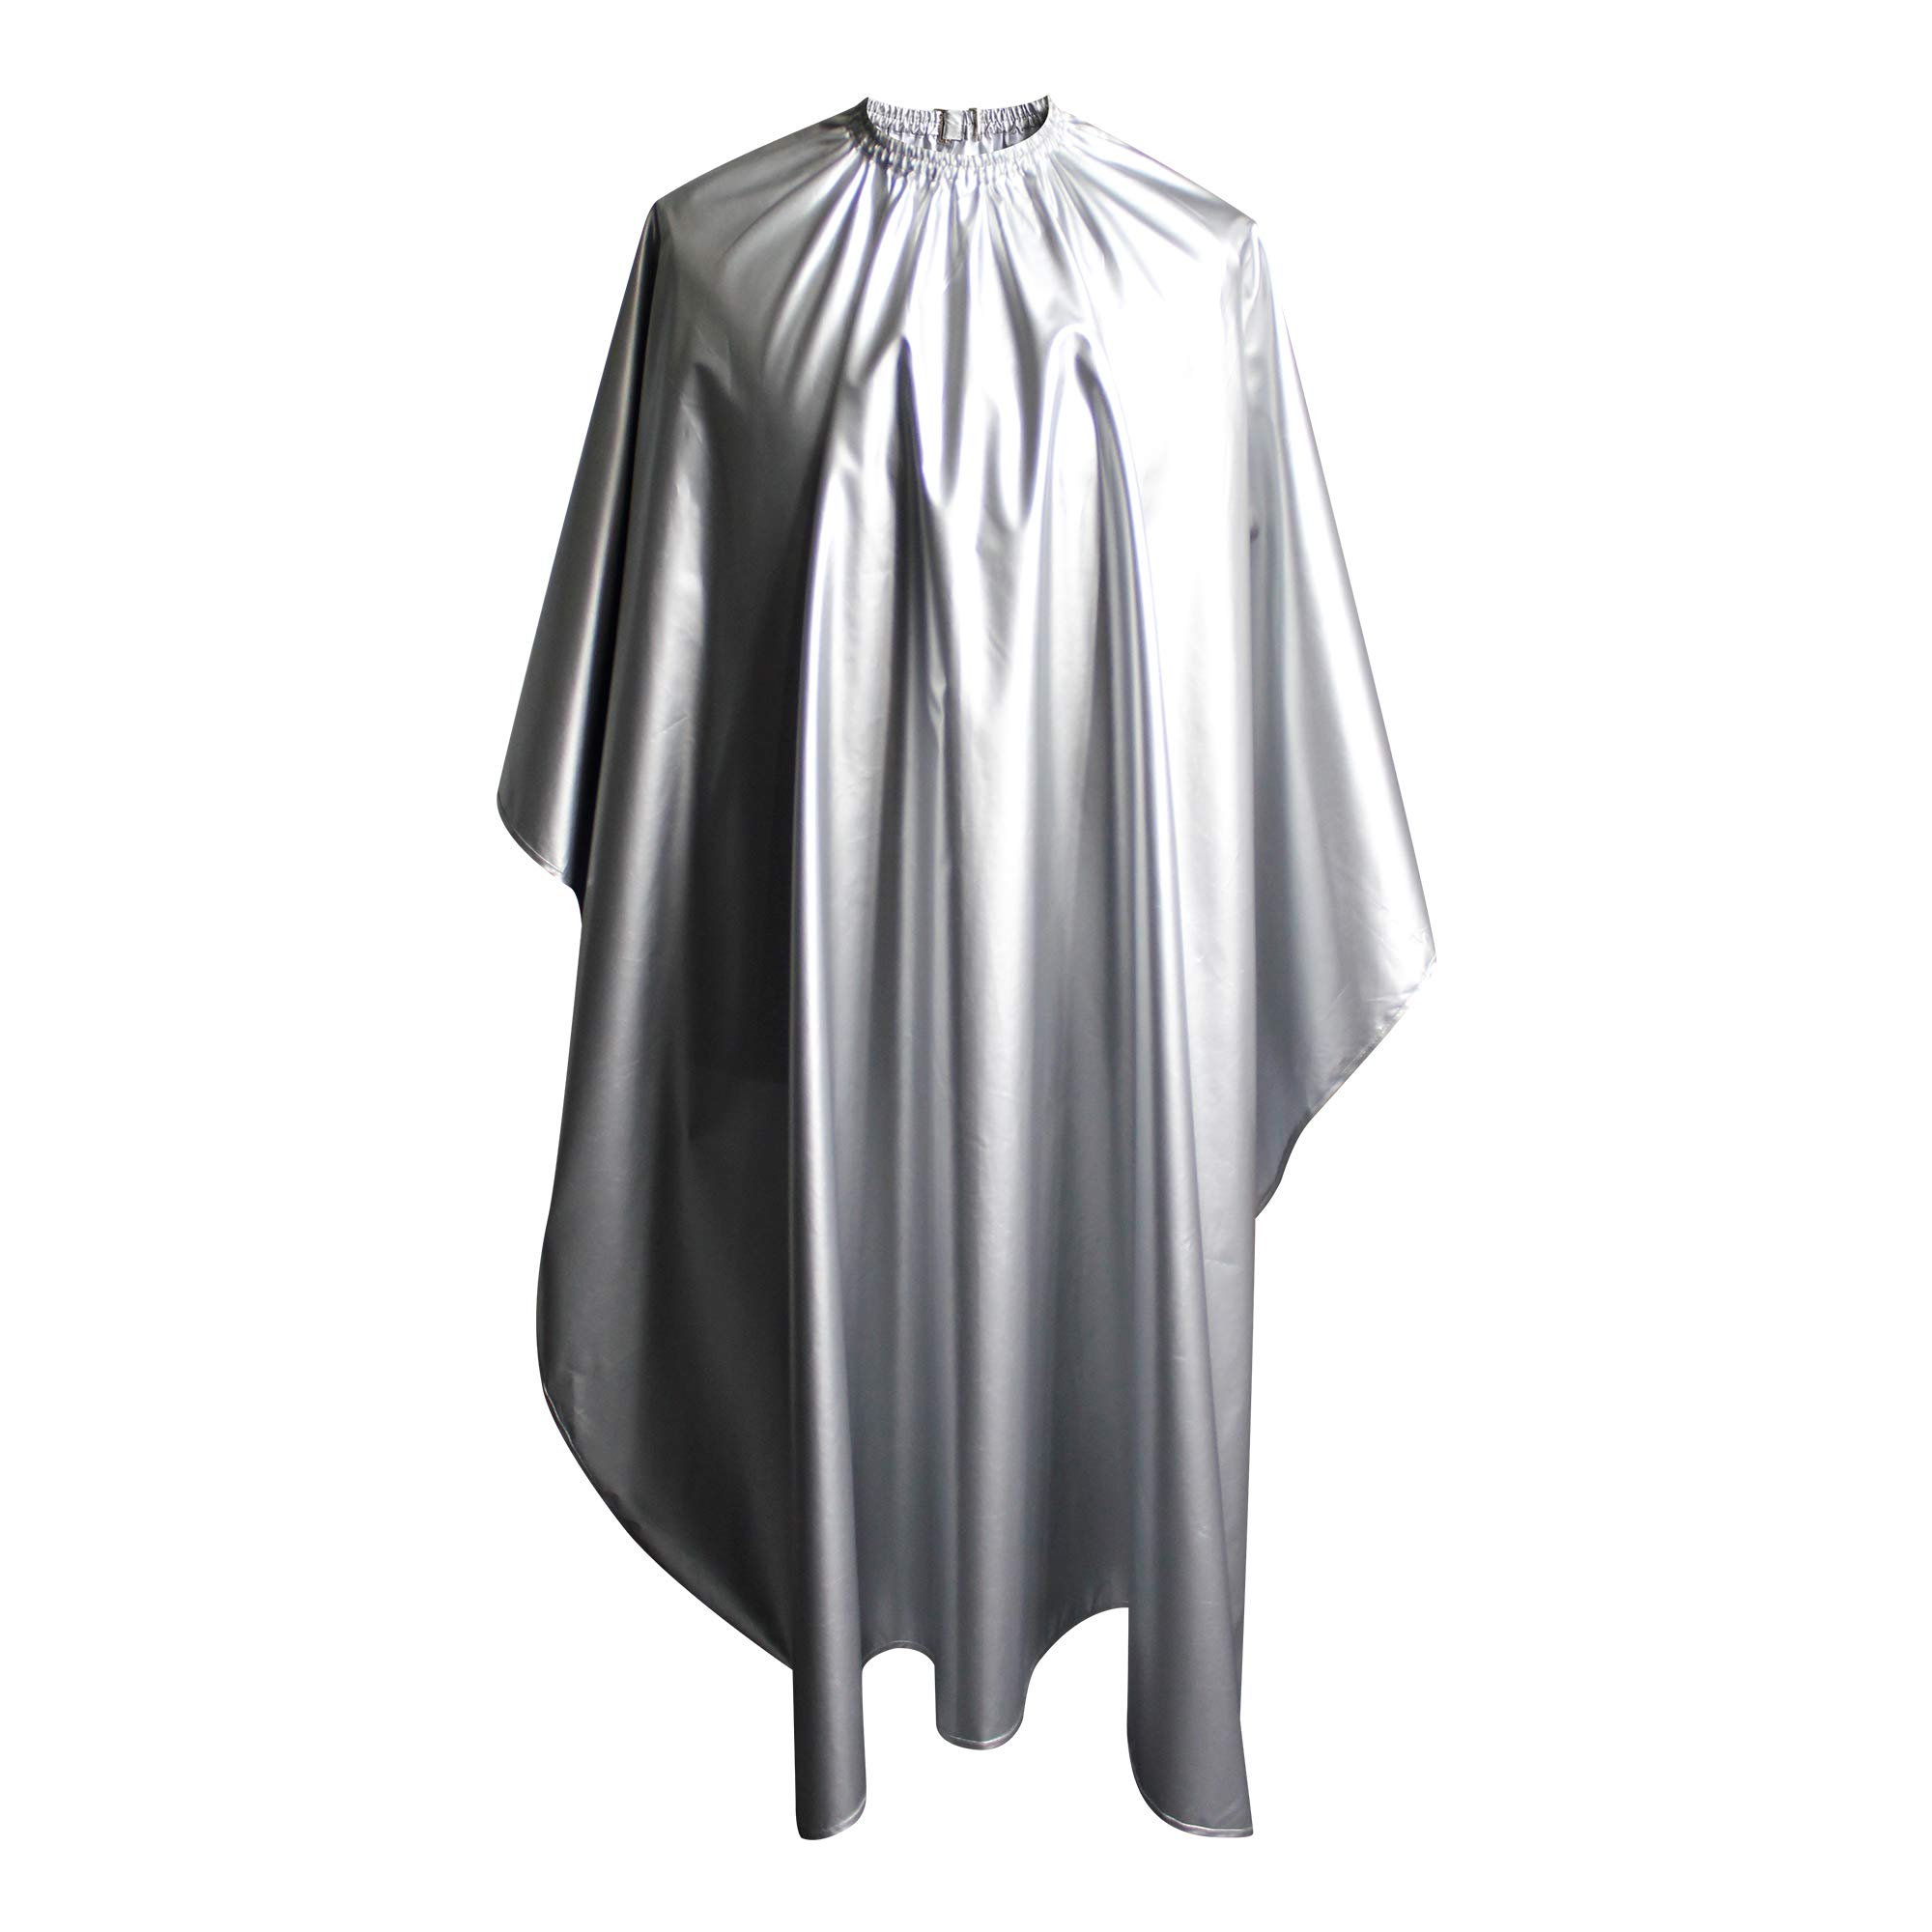 SMARTHAIR Professional Salon Cape Polyester Haircut Apron Shampoo & Chemical Resistant Haircut Cape,54''x62'',Silver,C012001B-S by SMARTHAIR